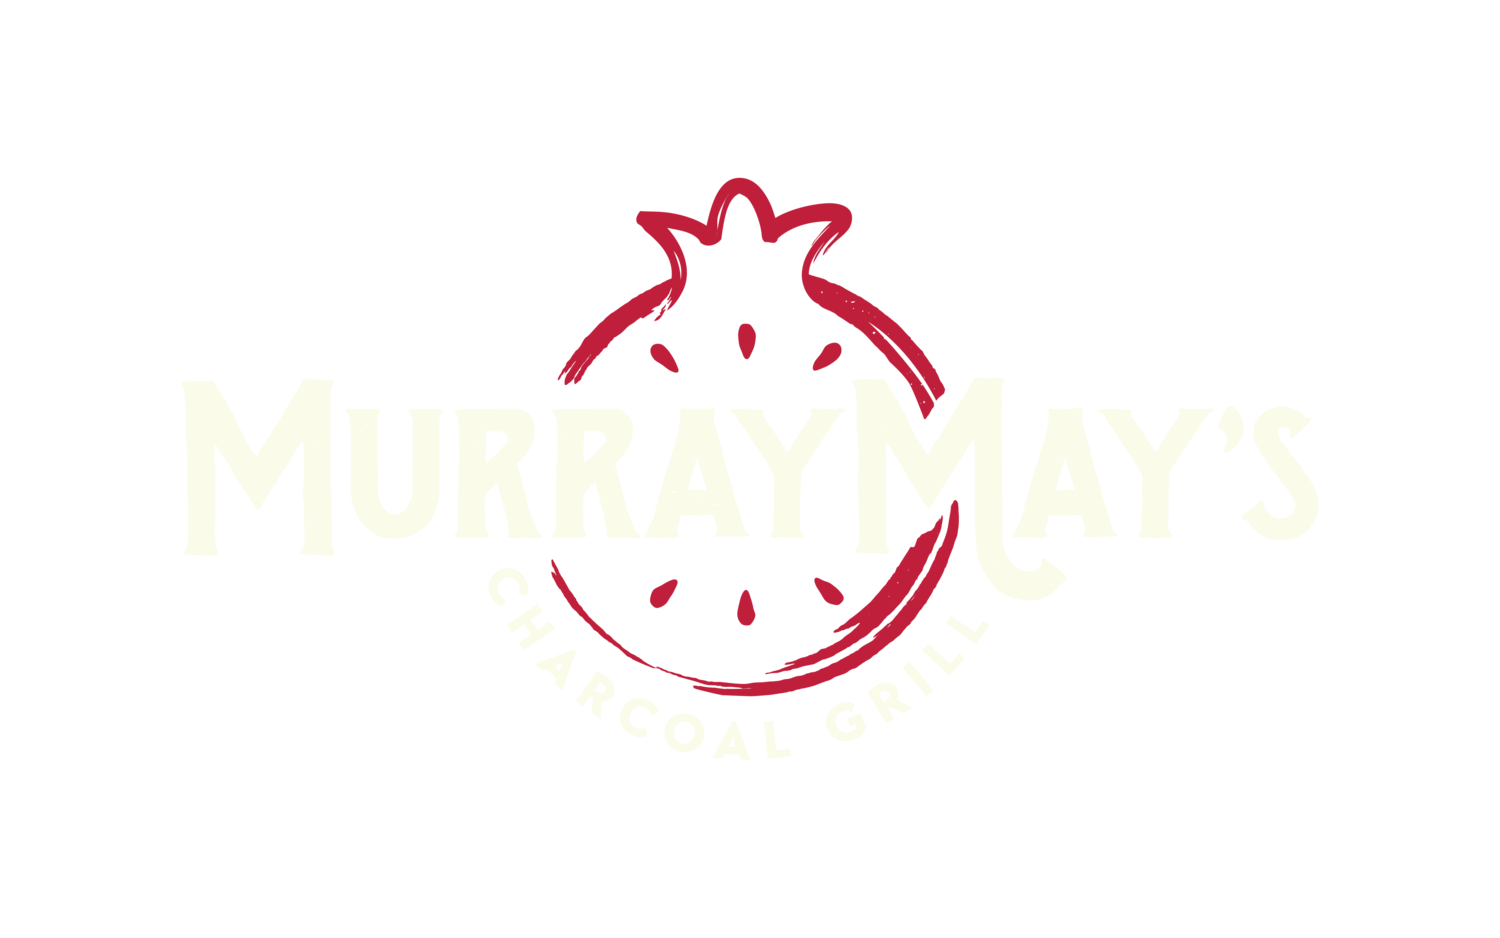 Murray May's